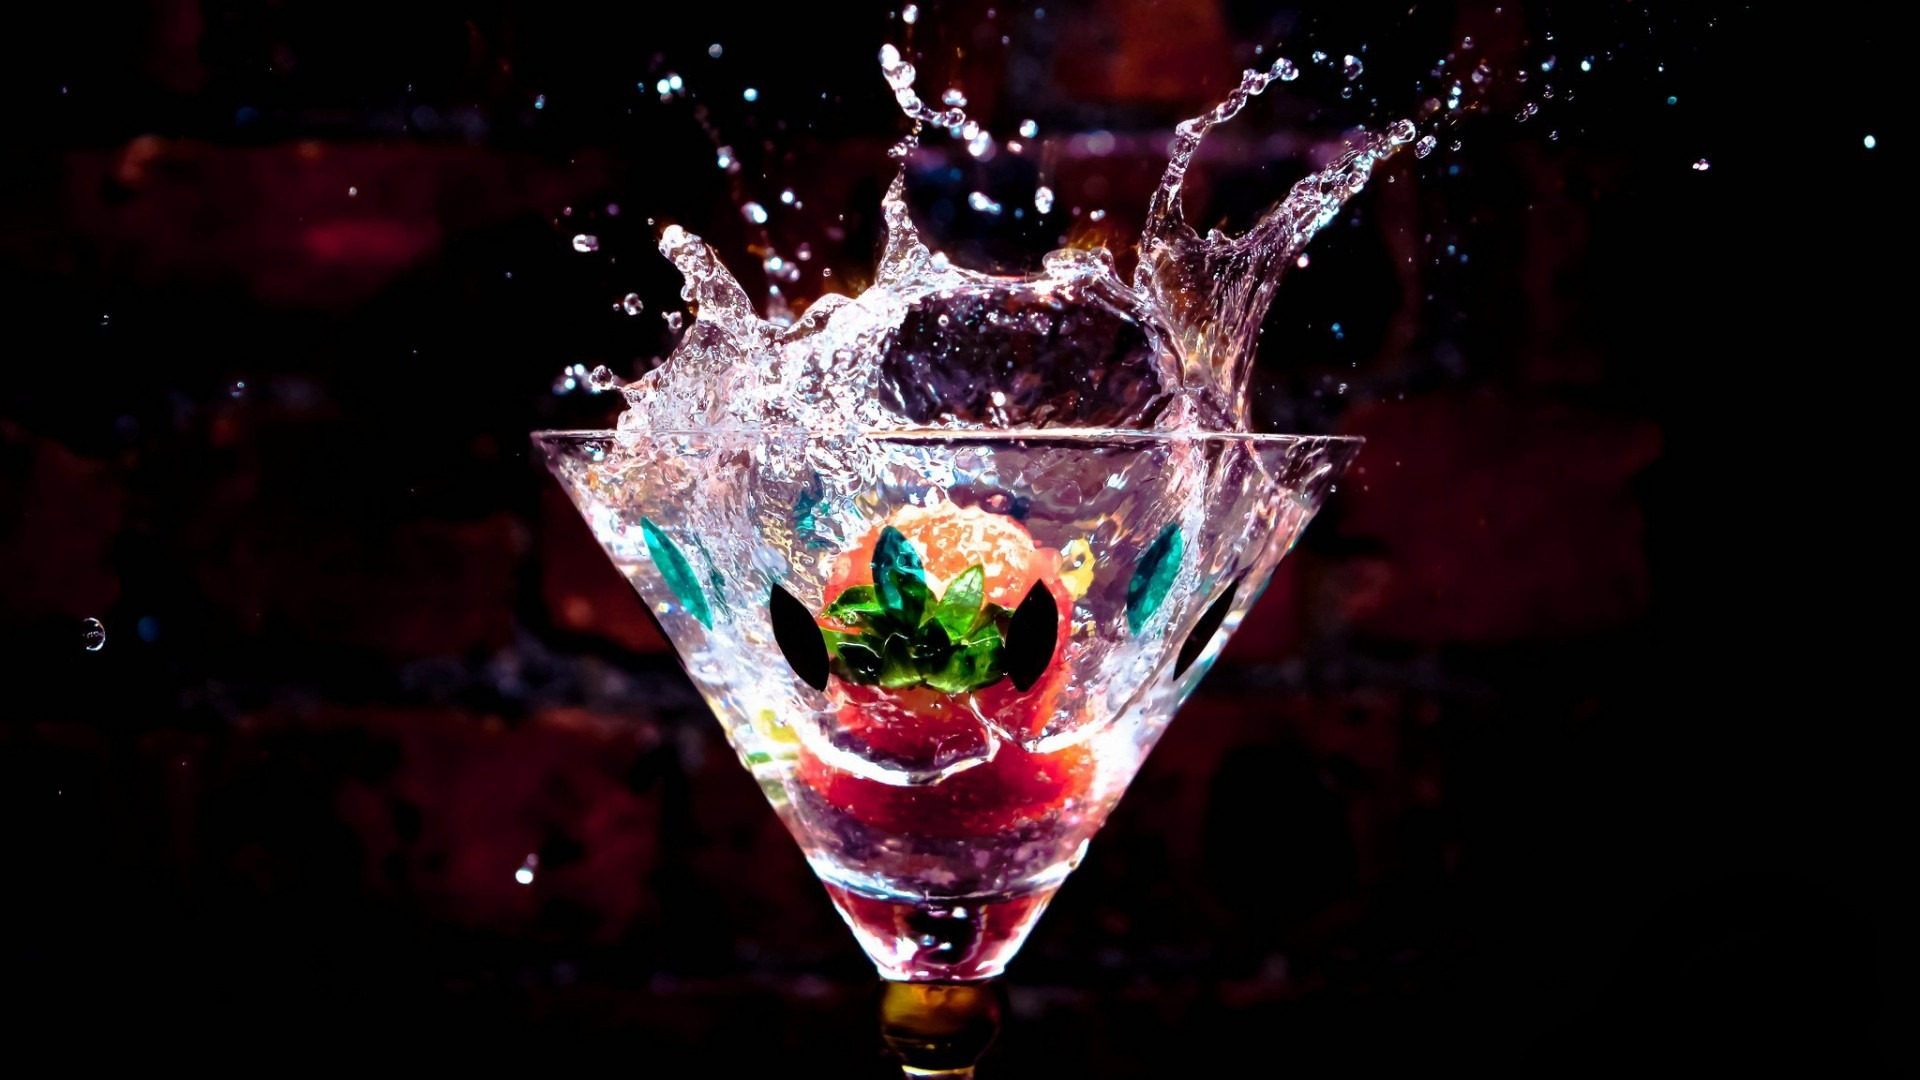 Cocktail Splash 1920x1080 Wallpaper HD Desktop Widescreen High Quality Image